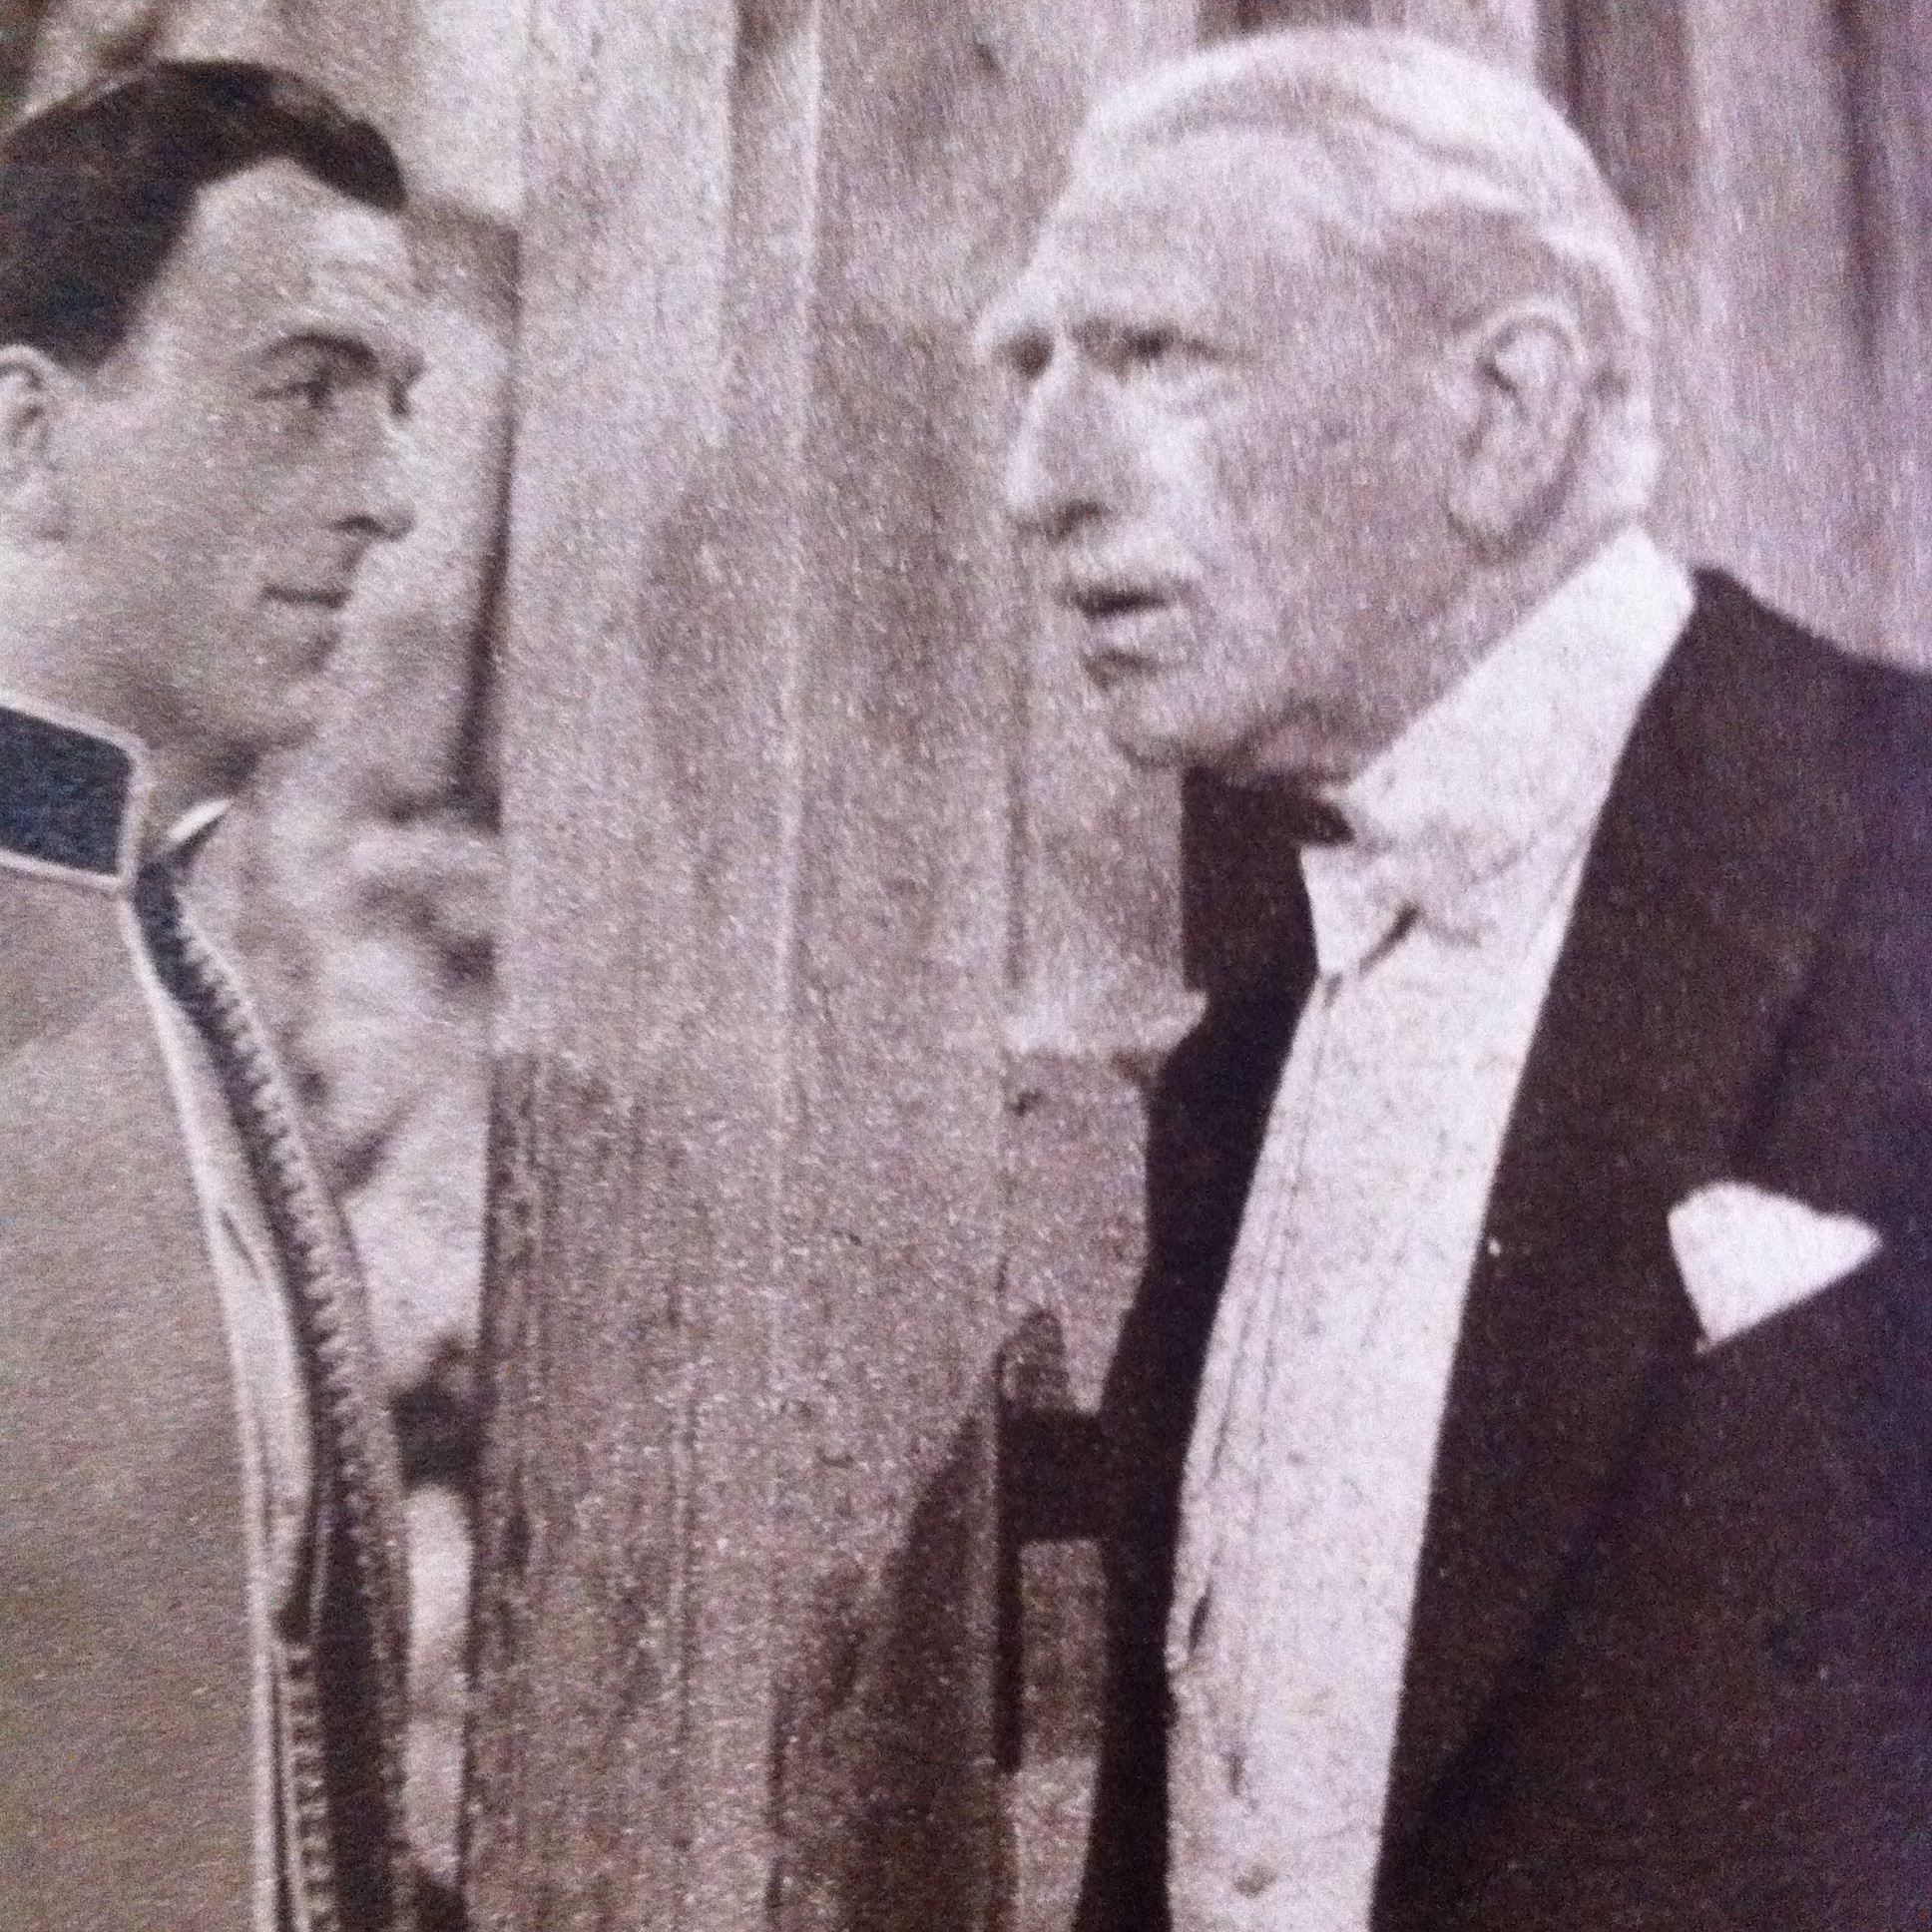 John Clements and C. Aubrey Smith in The Four Feathers (1939)